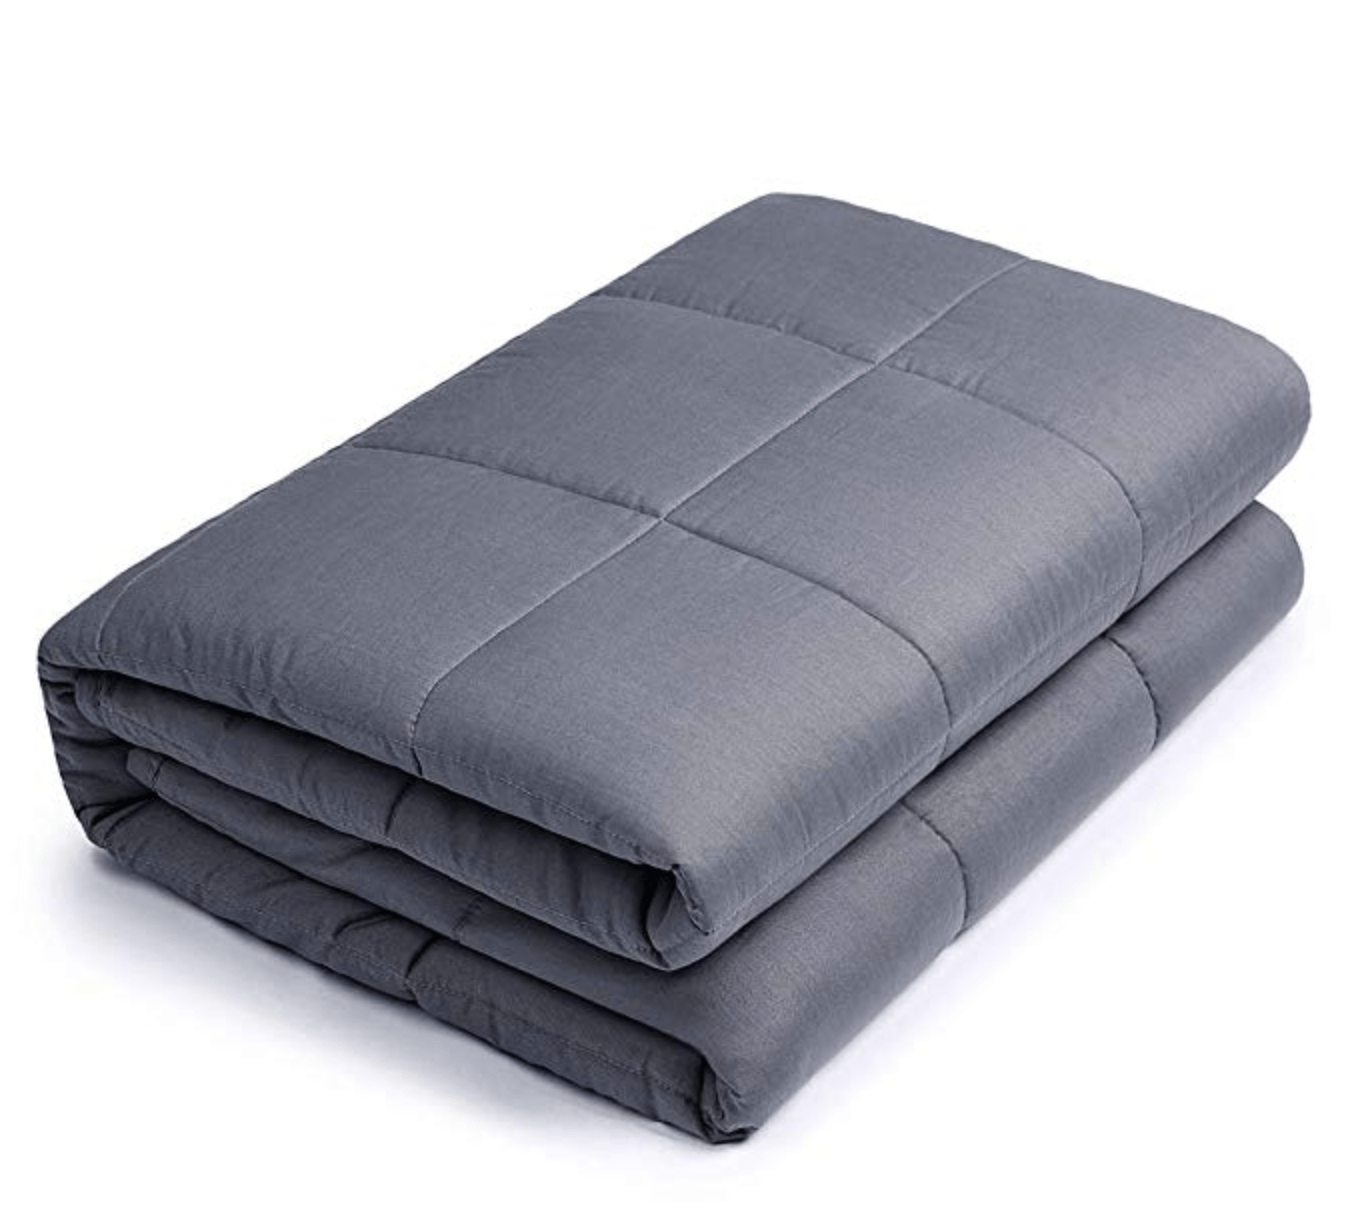 Weighted Blanket for Queen Bed